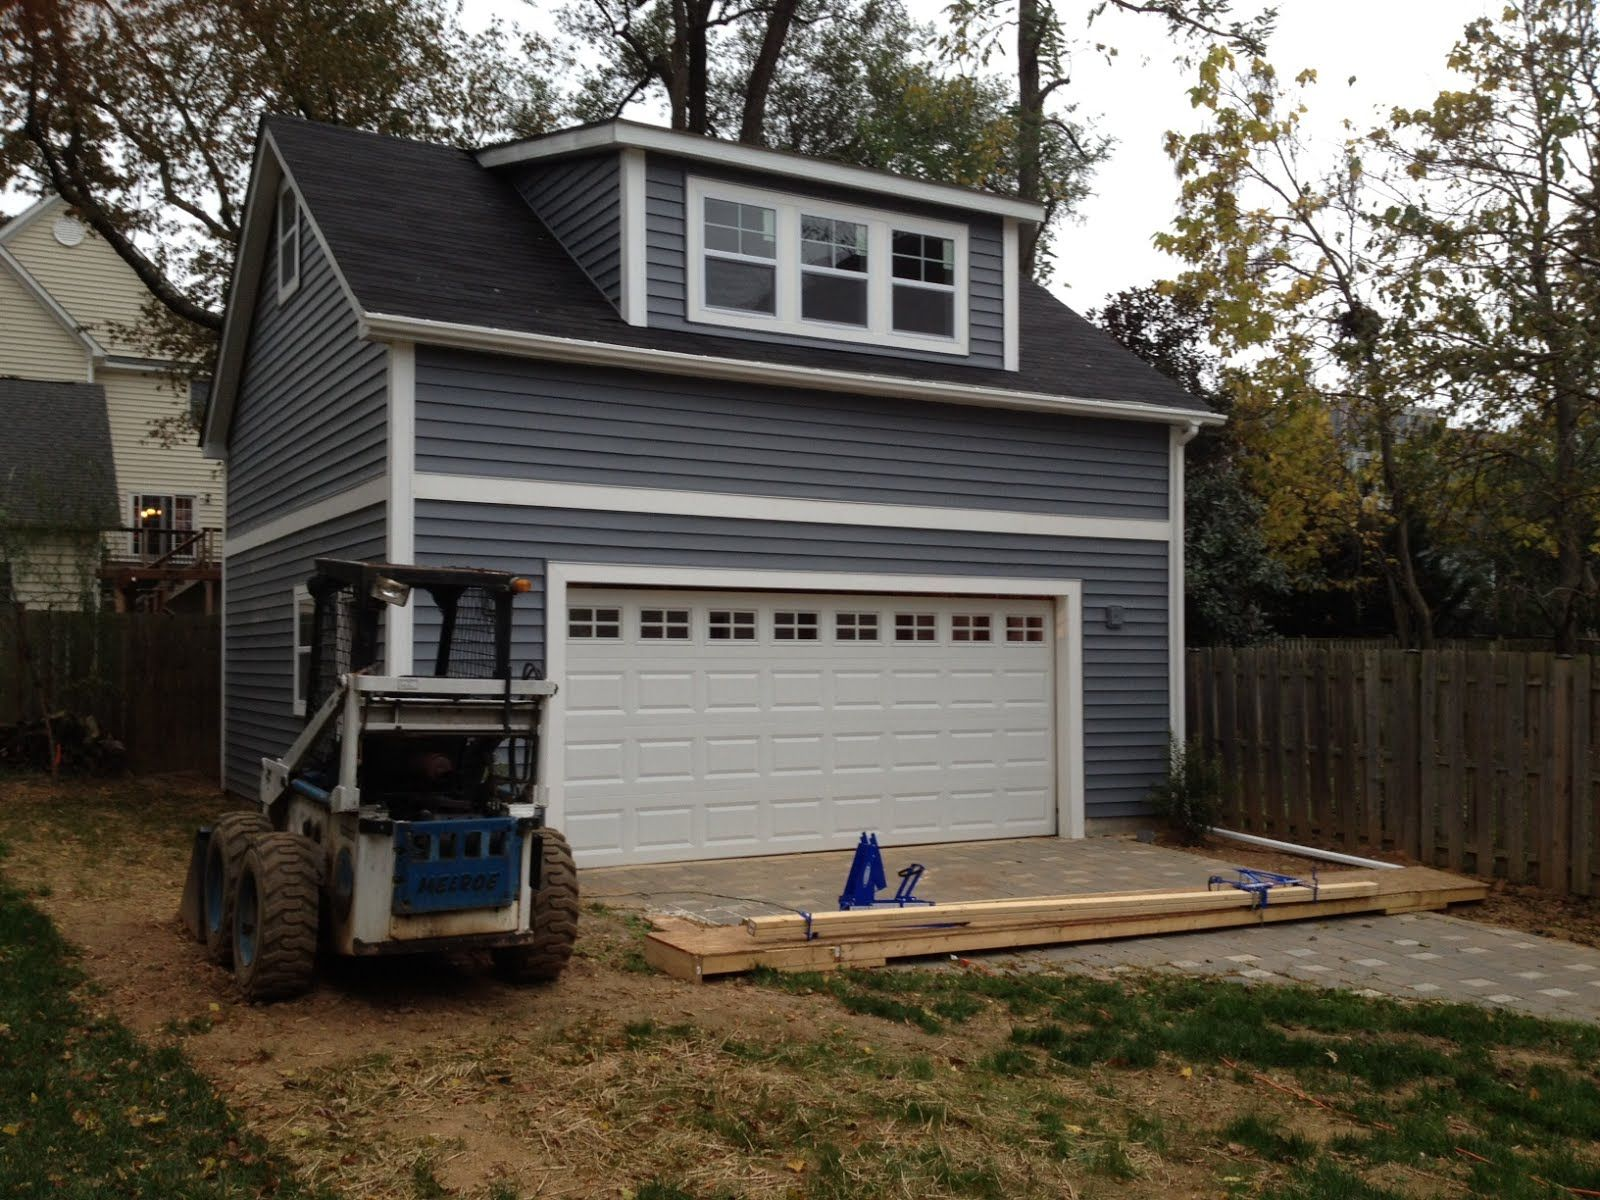 Single shed dormer garage garage conversion dormer for How much does it cost to build a dormer window